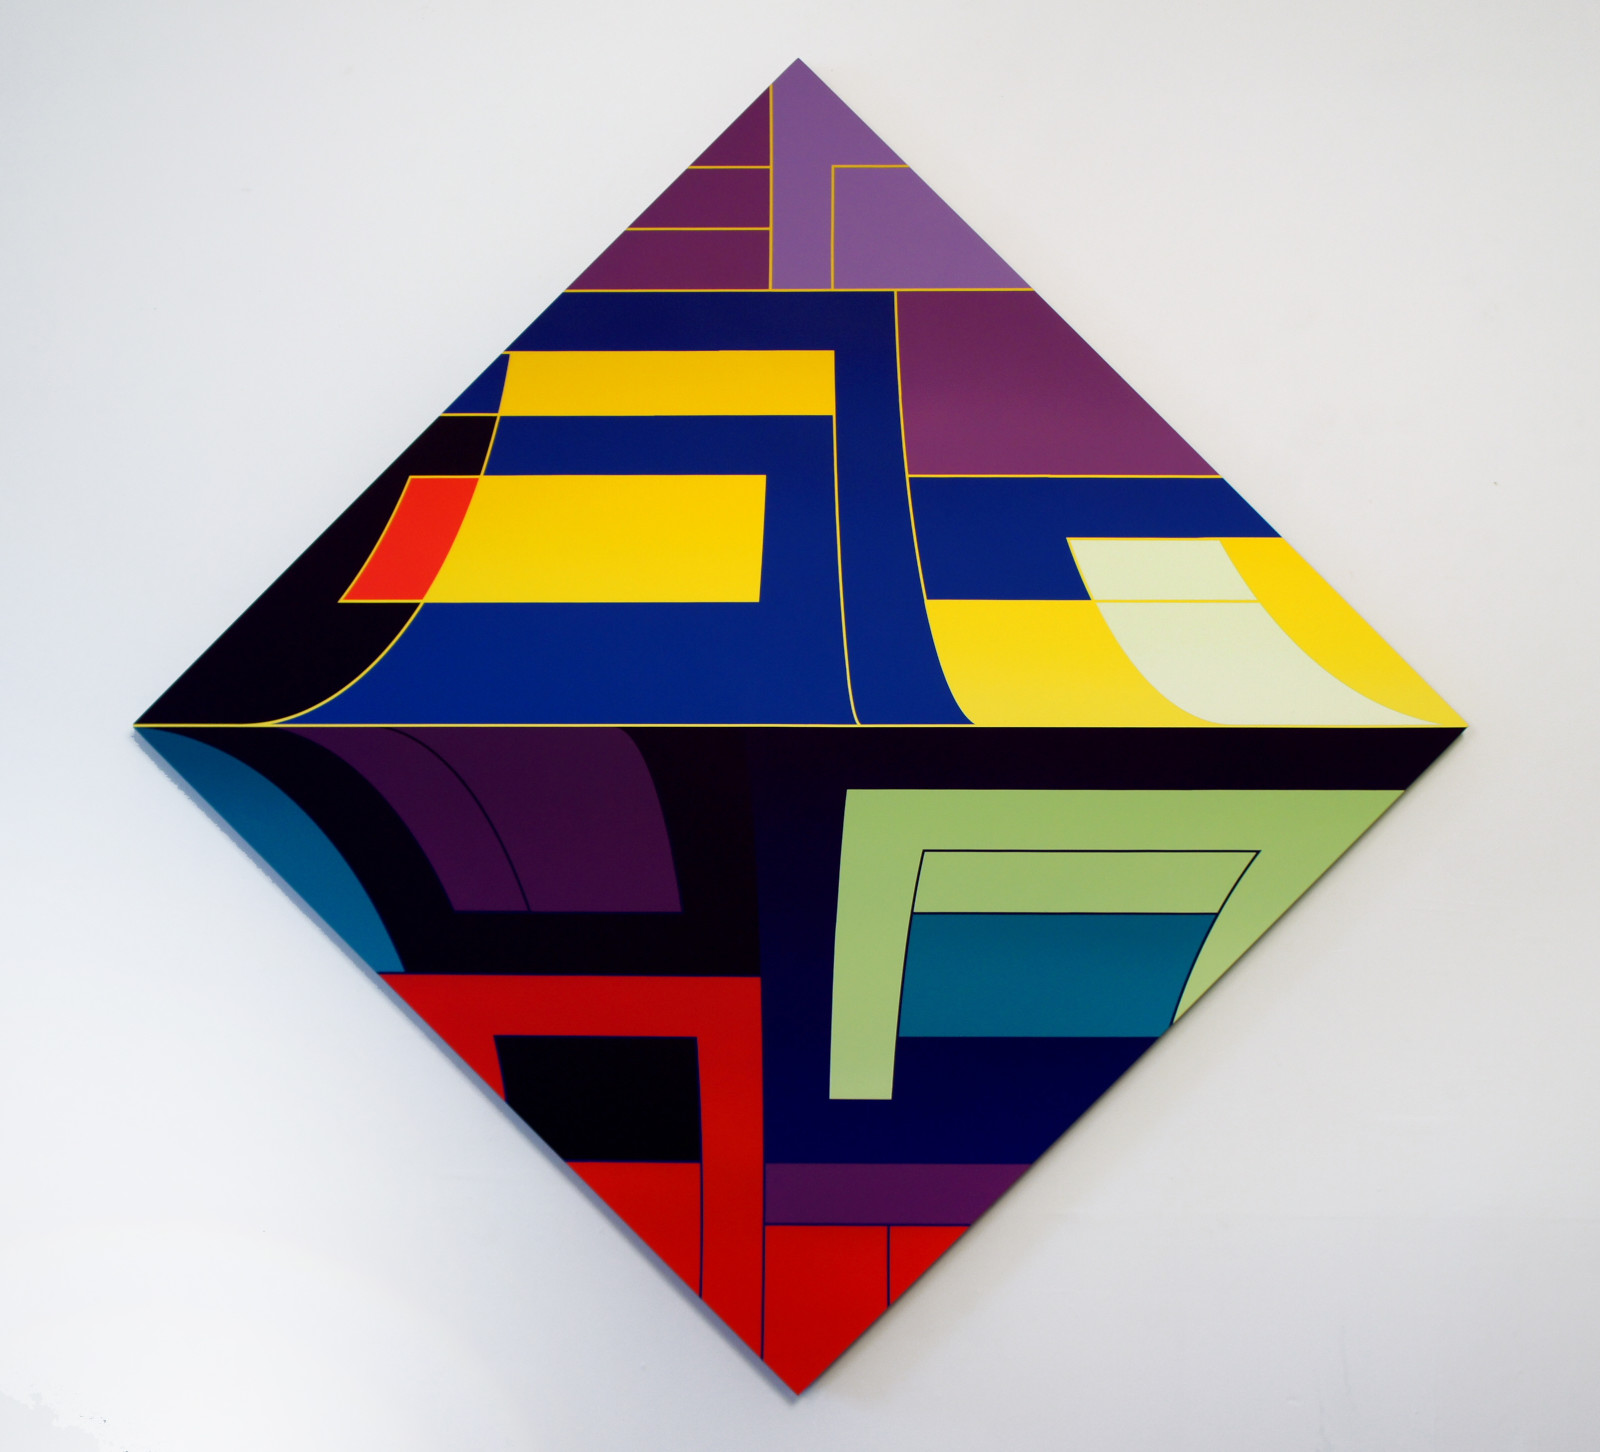 Thomas Burke, Bliss, 2015, acrylic on panel, 68 x 68 inches; installed at Western Project